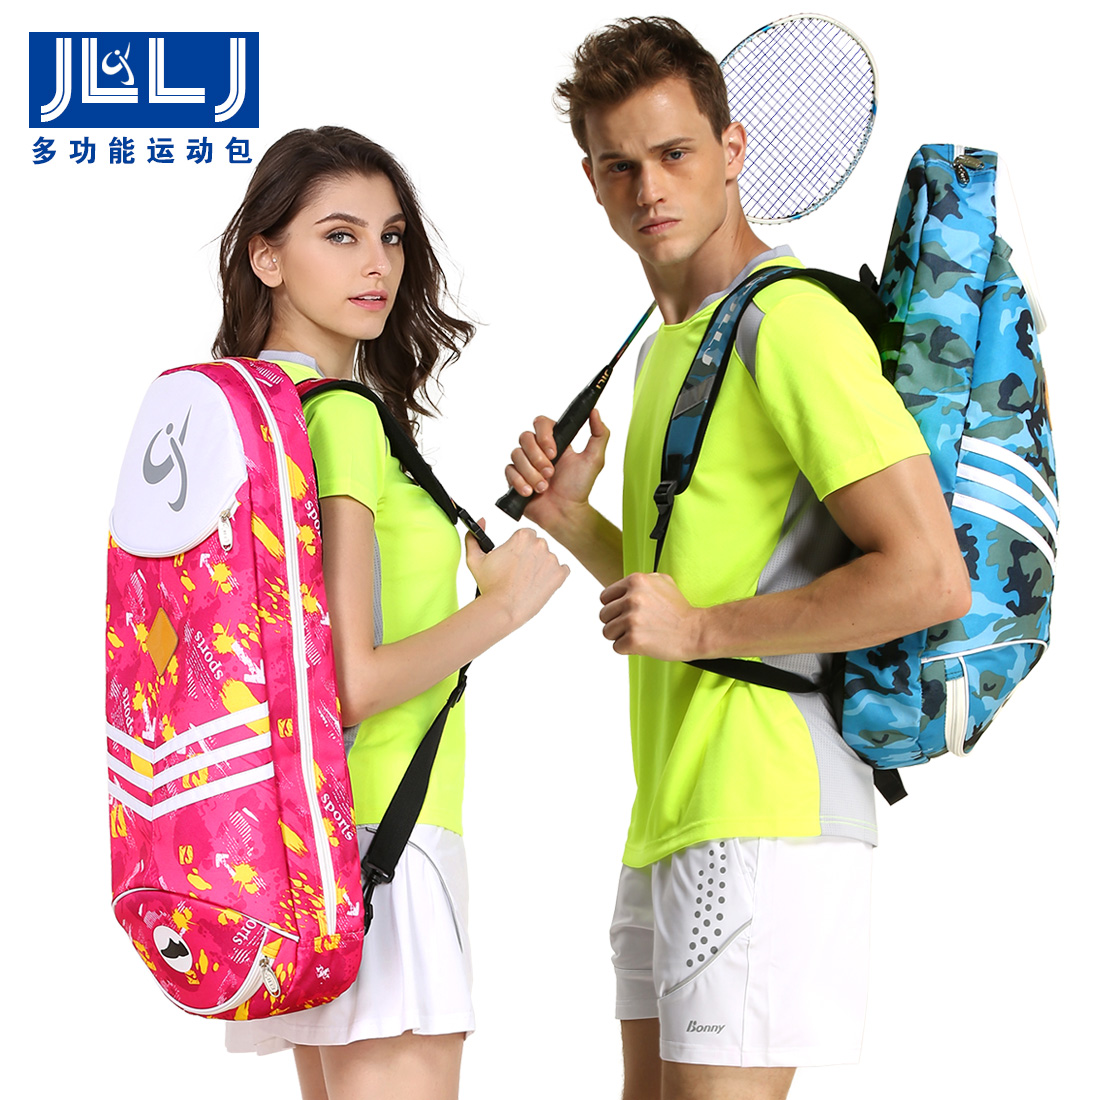 Jllj badminton bag 3 sticks badminton bag shoulder bag men and women shoulder bag fashion female models 3 installed new authentic